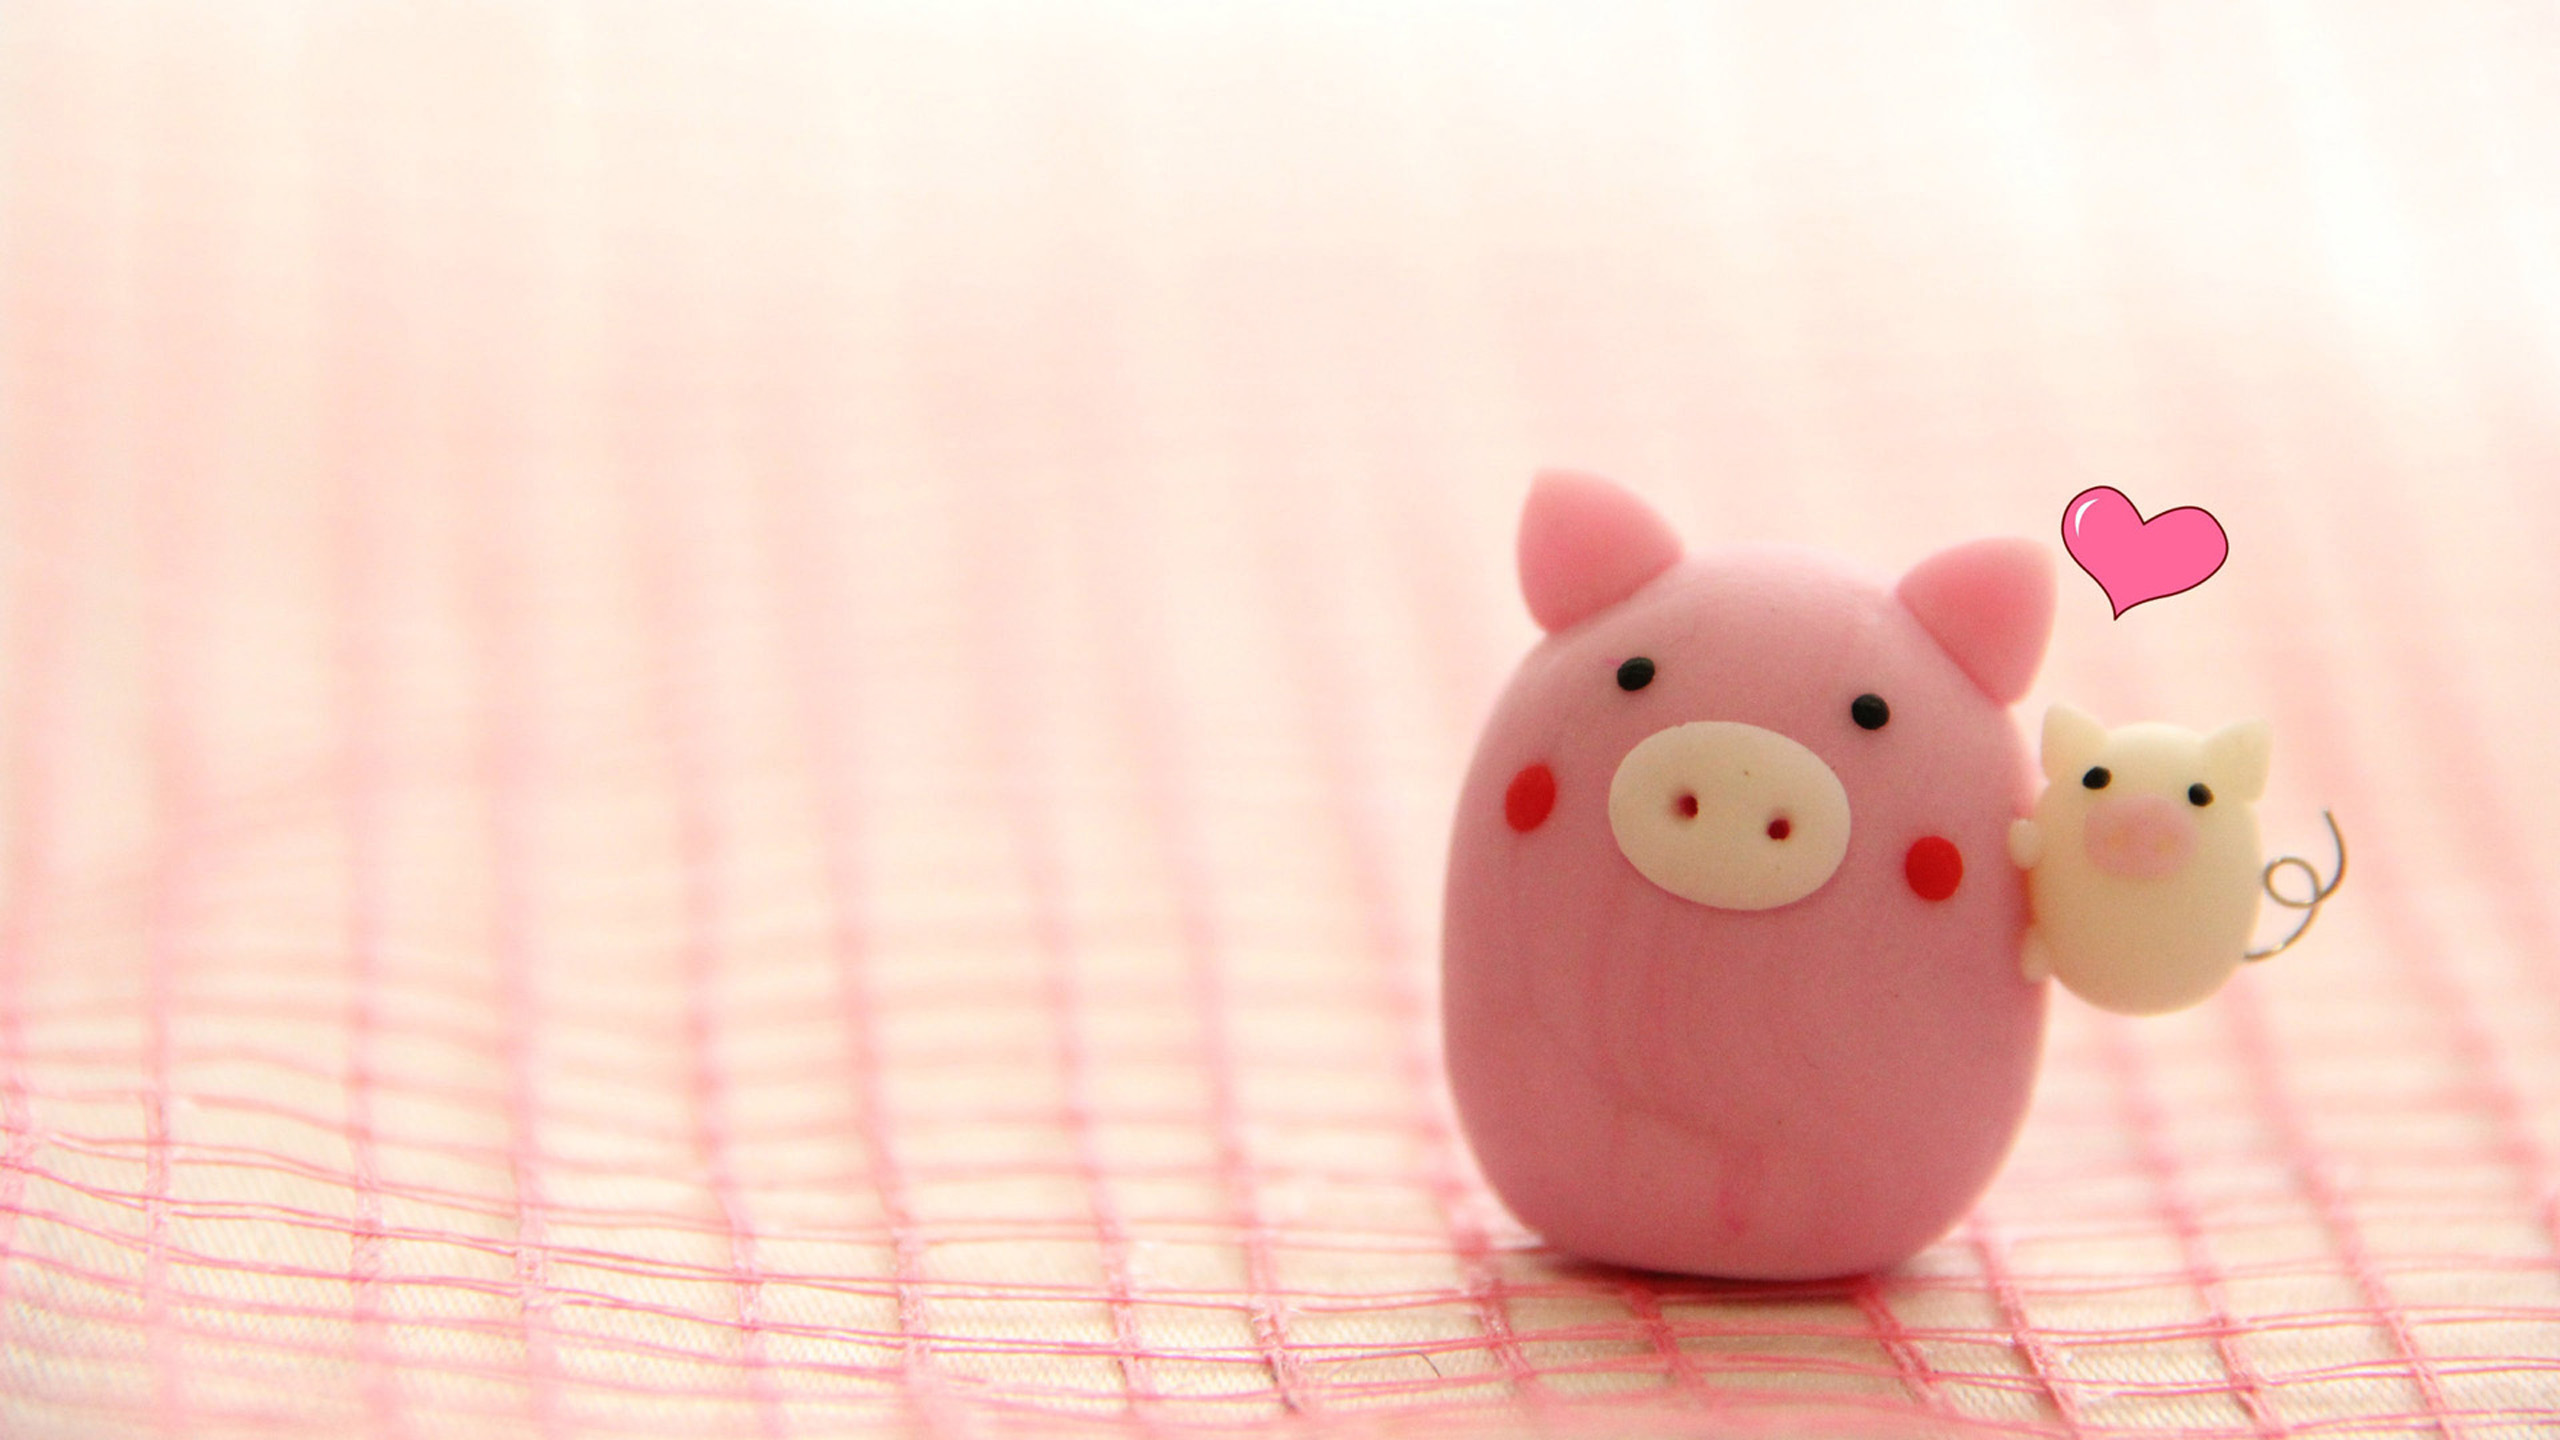 Pig Wallpaper Collection For Download 2560x1440